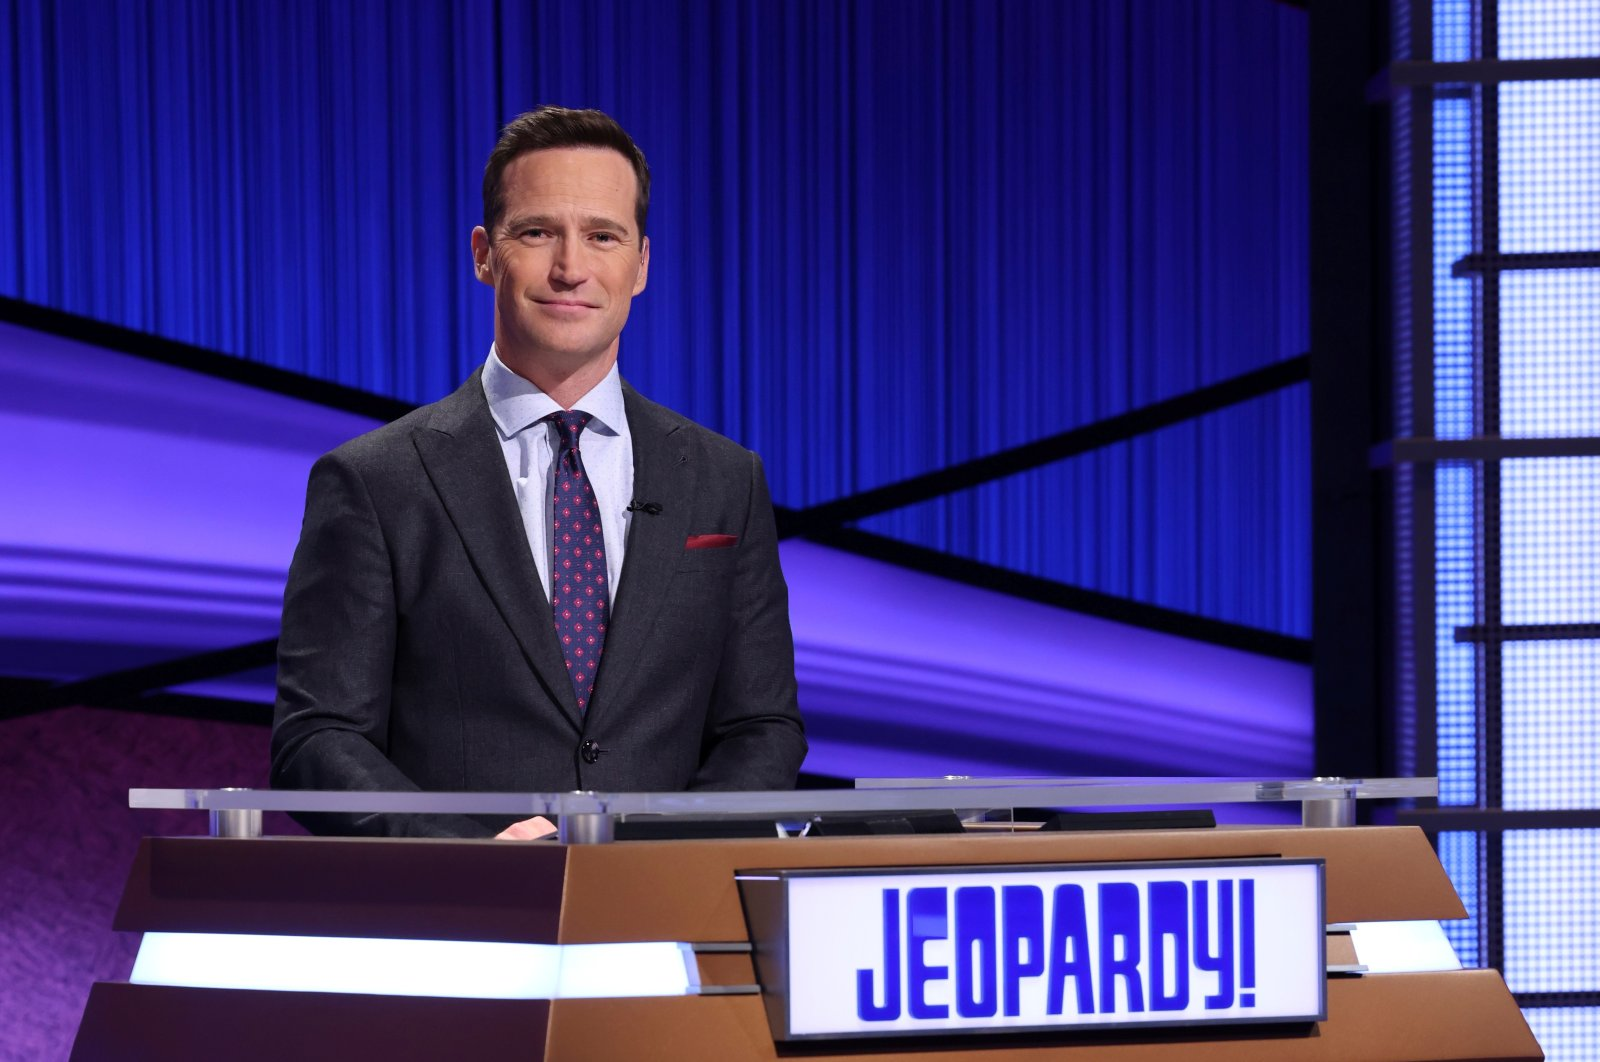 """An undated handout photo of """"Jeopardy!"""" executive producer and former host Mike Richards. (Carol Kaelson/Sony Pictures Entertainment/Handout via REUTERS)"""